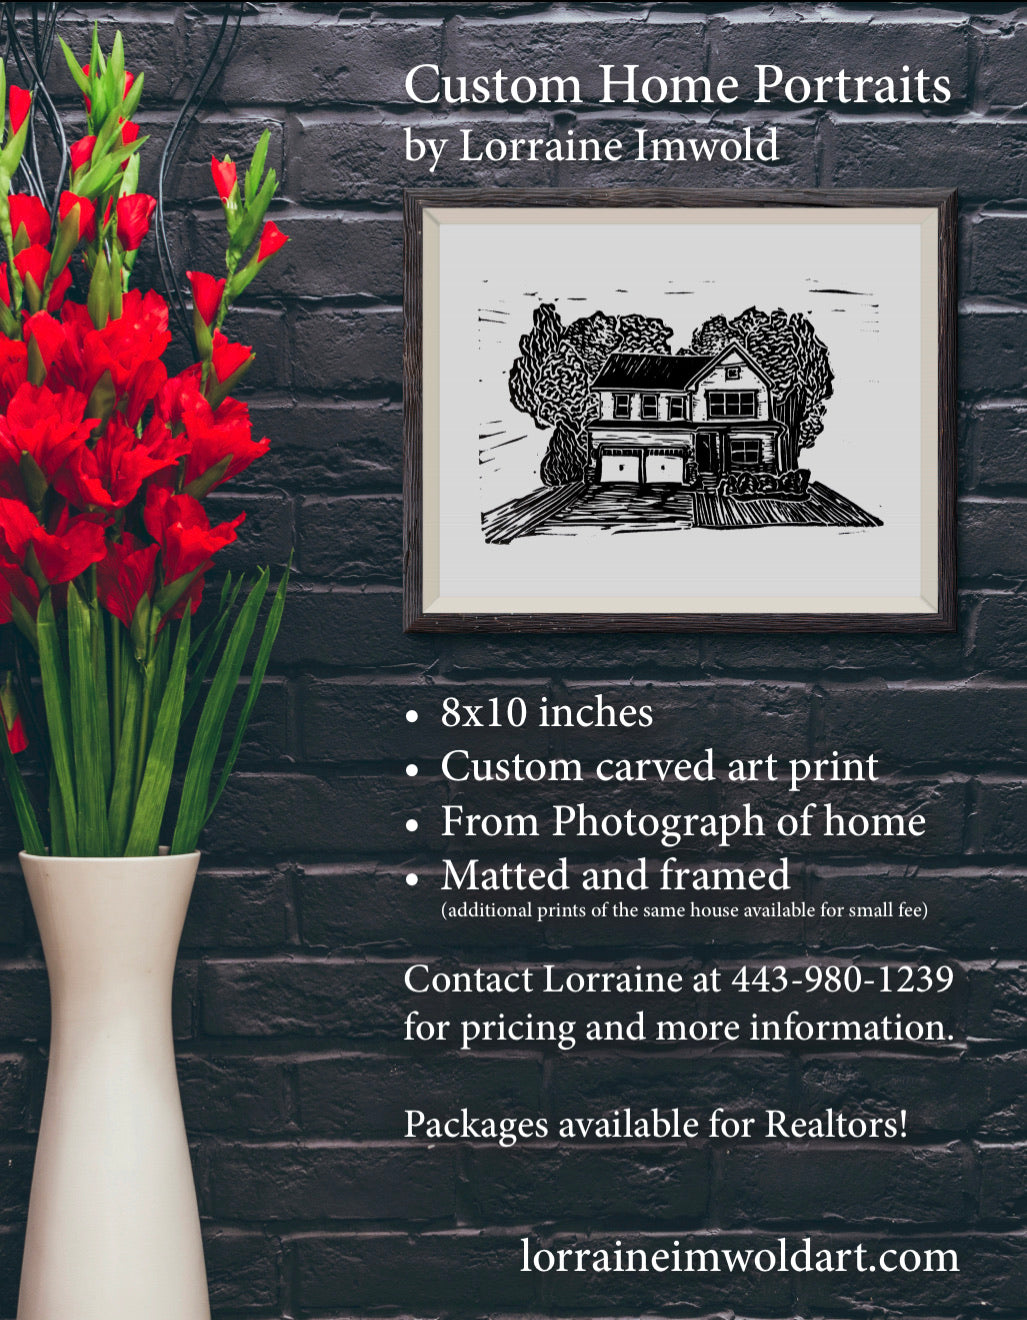 Buy a custom Home Portrait